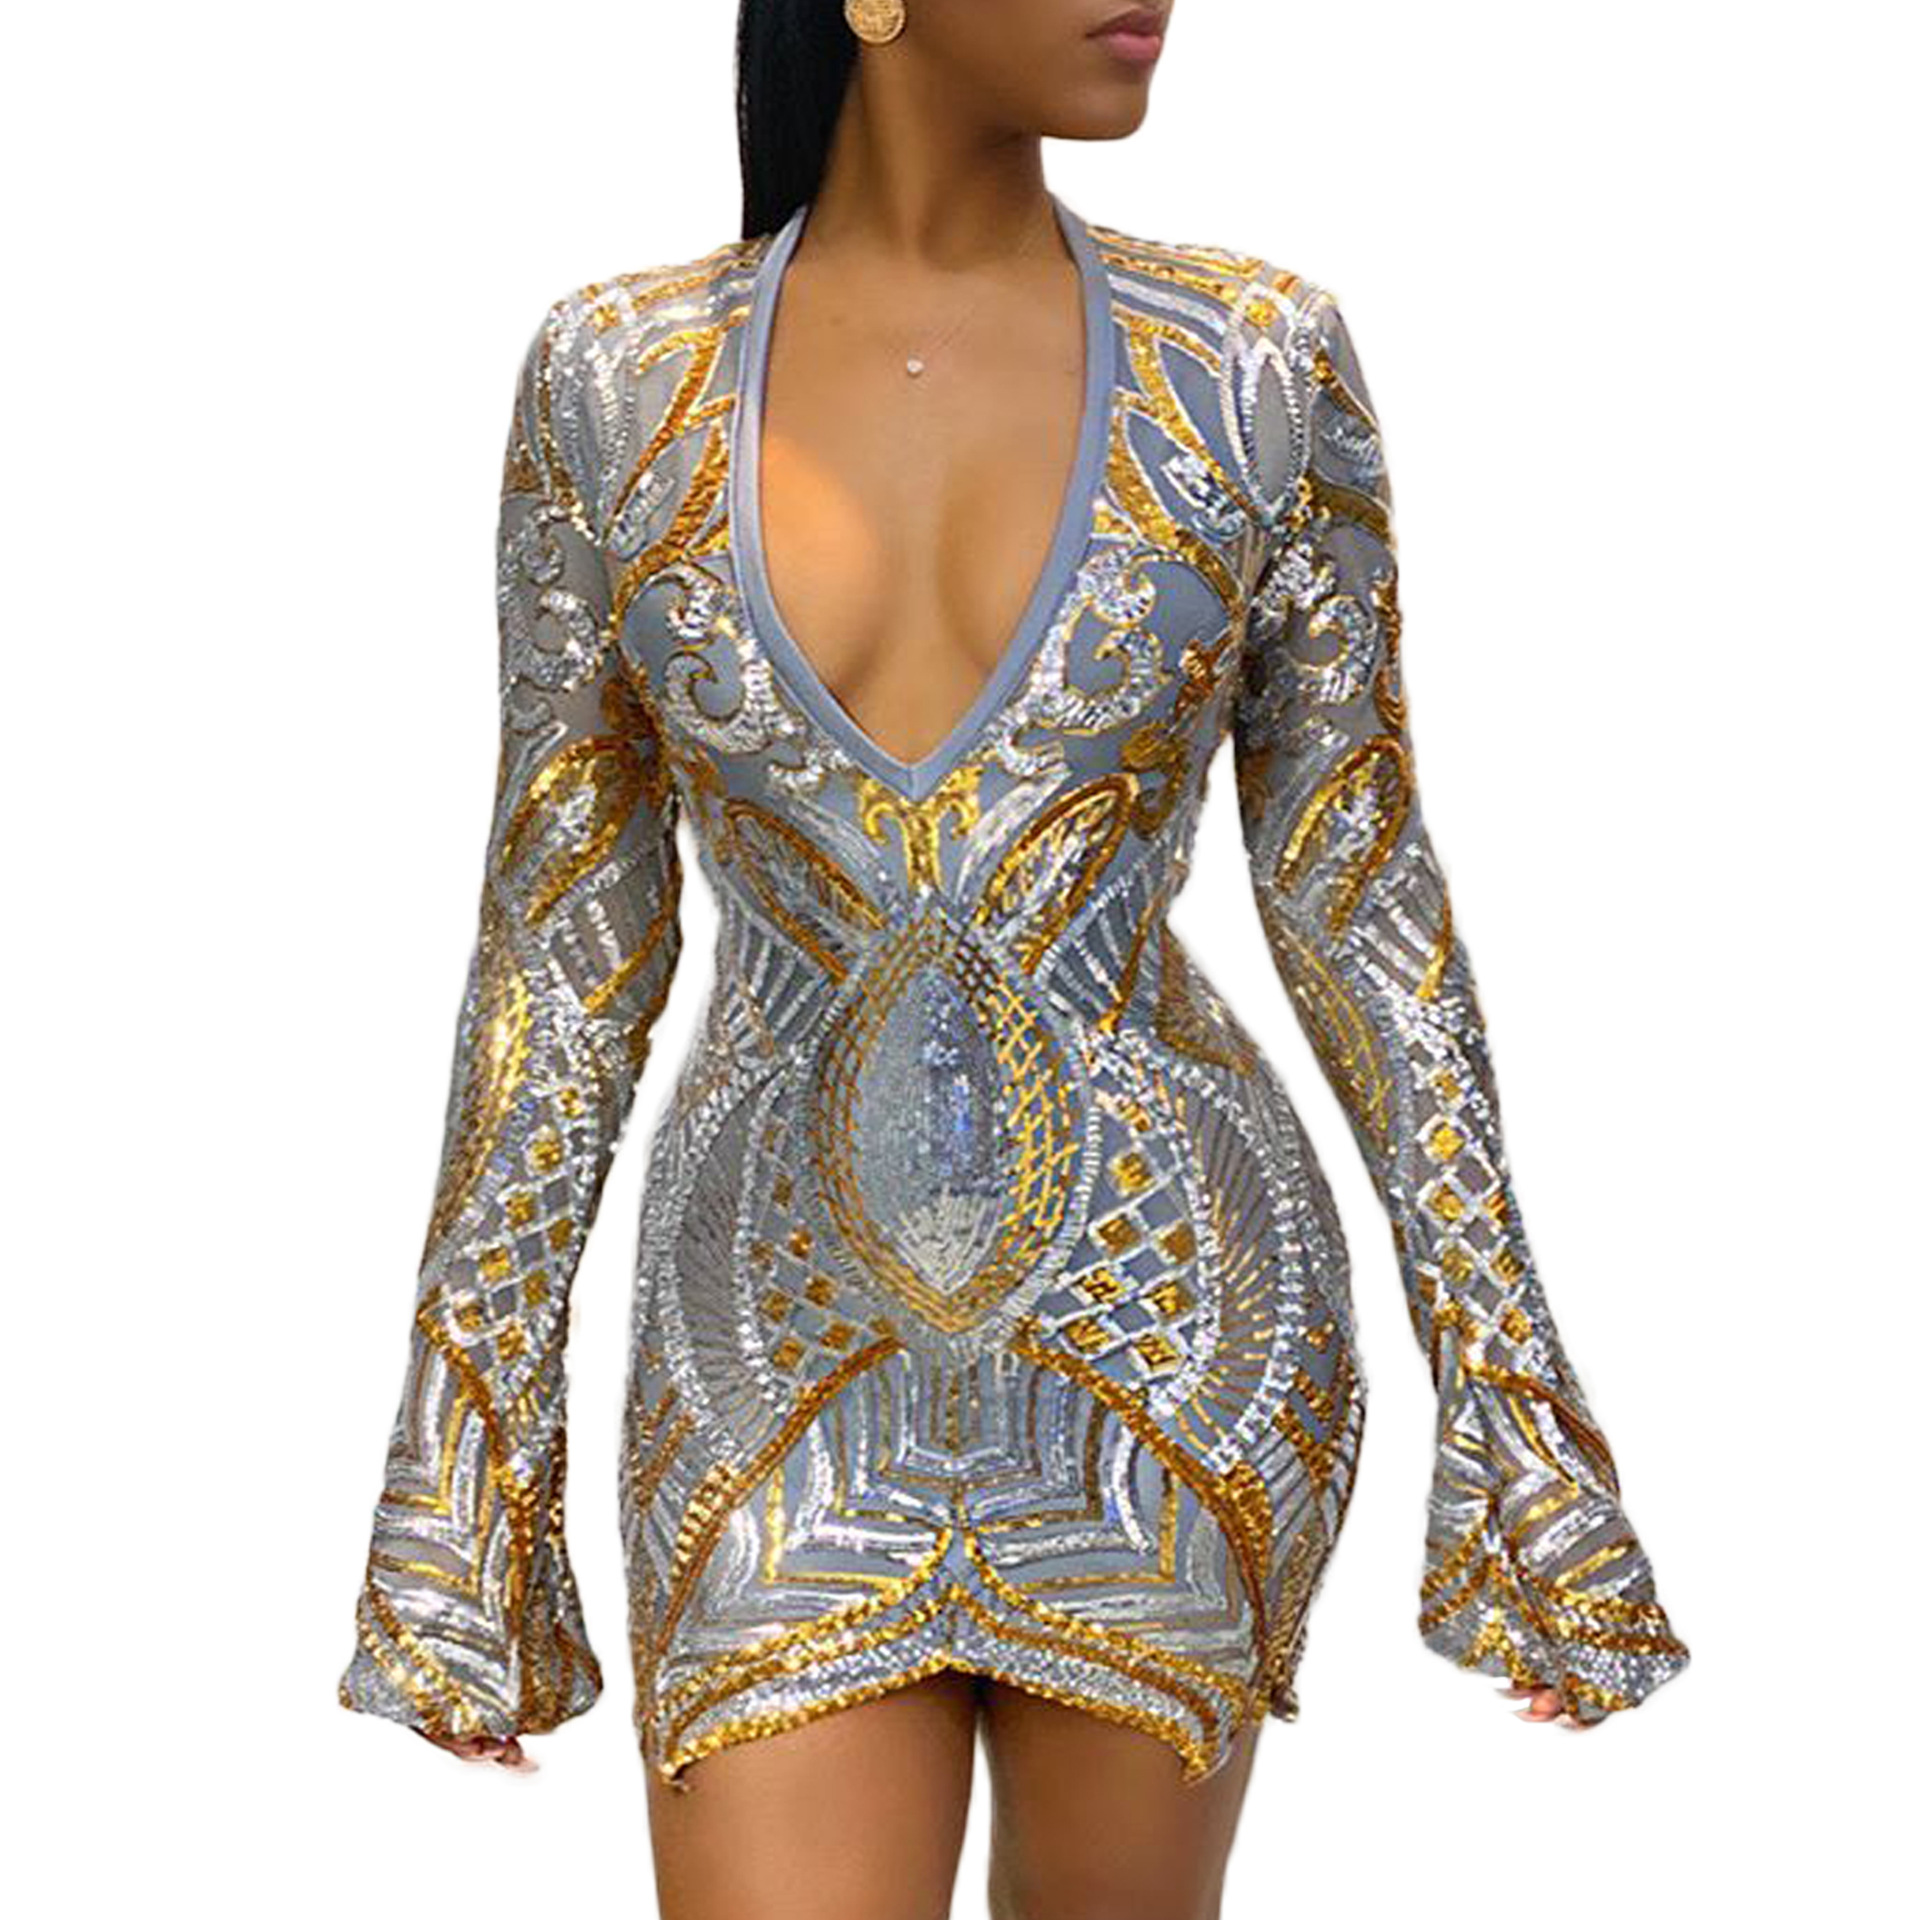 Echoine Women Sequined mini <font><b>dress</b></font> sexy long sleeve V-neck elegant bodycon <font><b>dresses</b></font> female party embroidery splice see through image